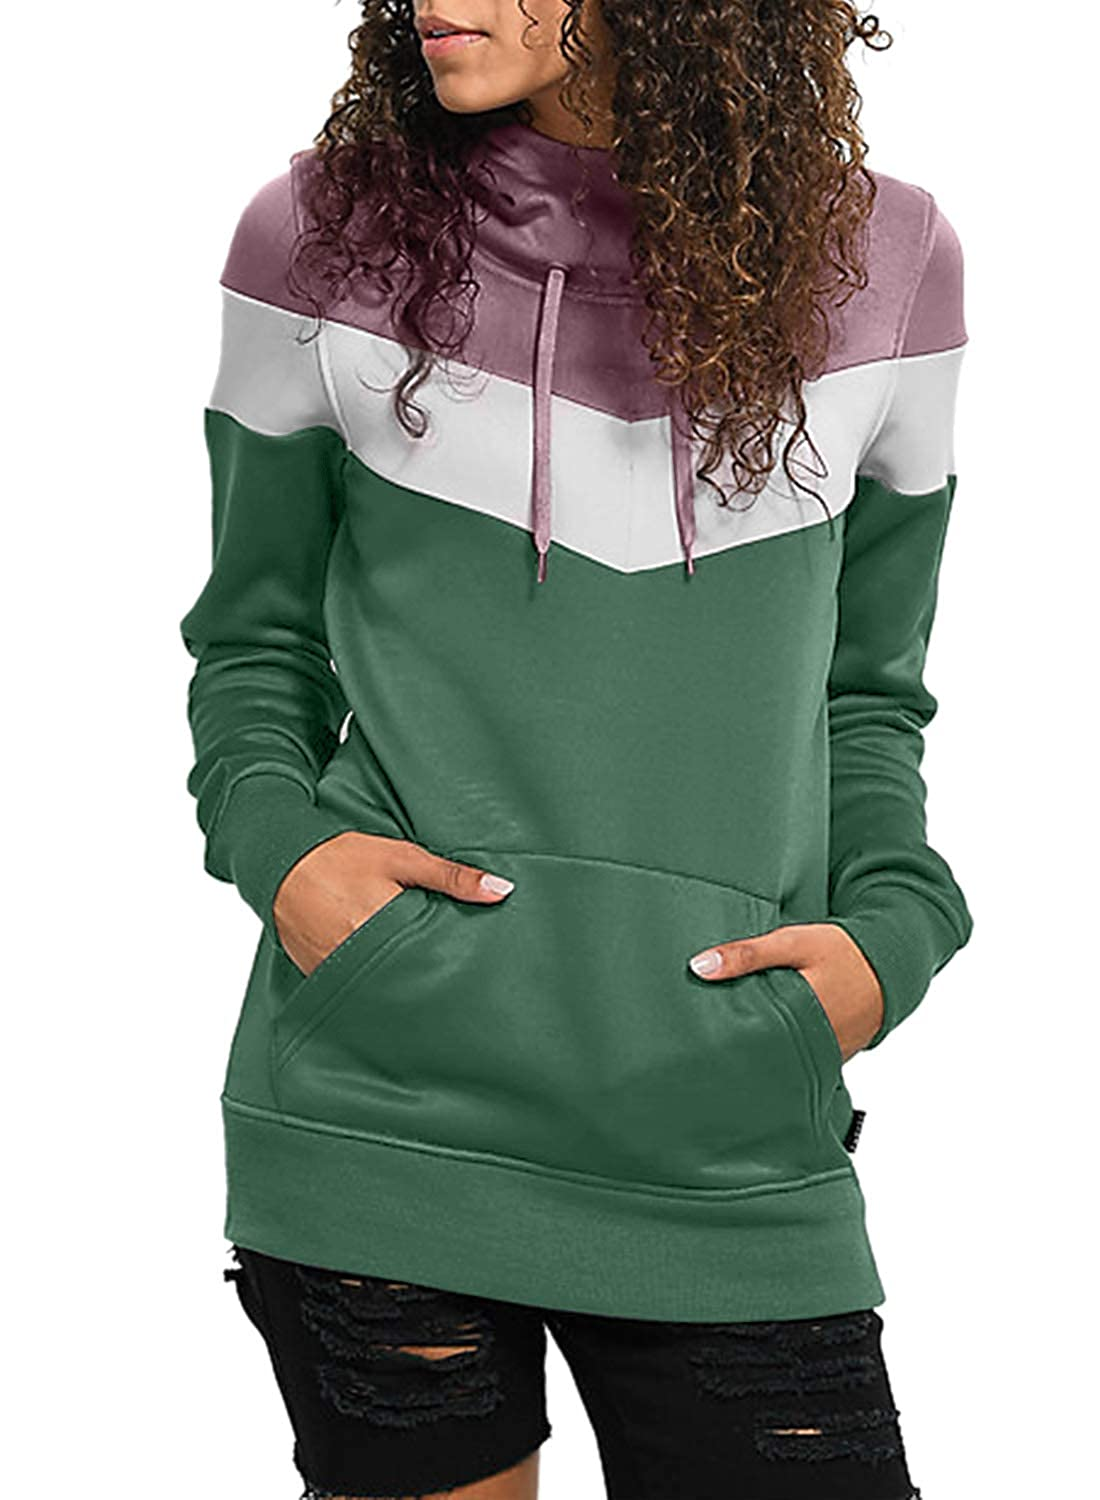 a2b23dab8 Splice 3 Color Block Lightweight Winter Fall Soft Hooded Sweatshirt Tops  Long Sleeve Fleece Pullover Hoodie Sweatshirts Drawstring Pullover  Sweatshirt with ...